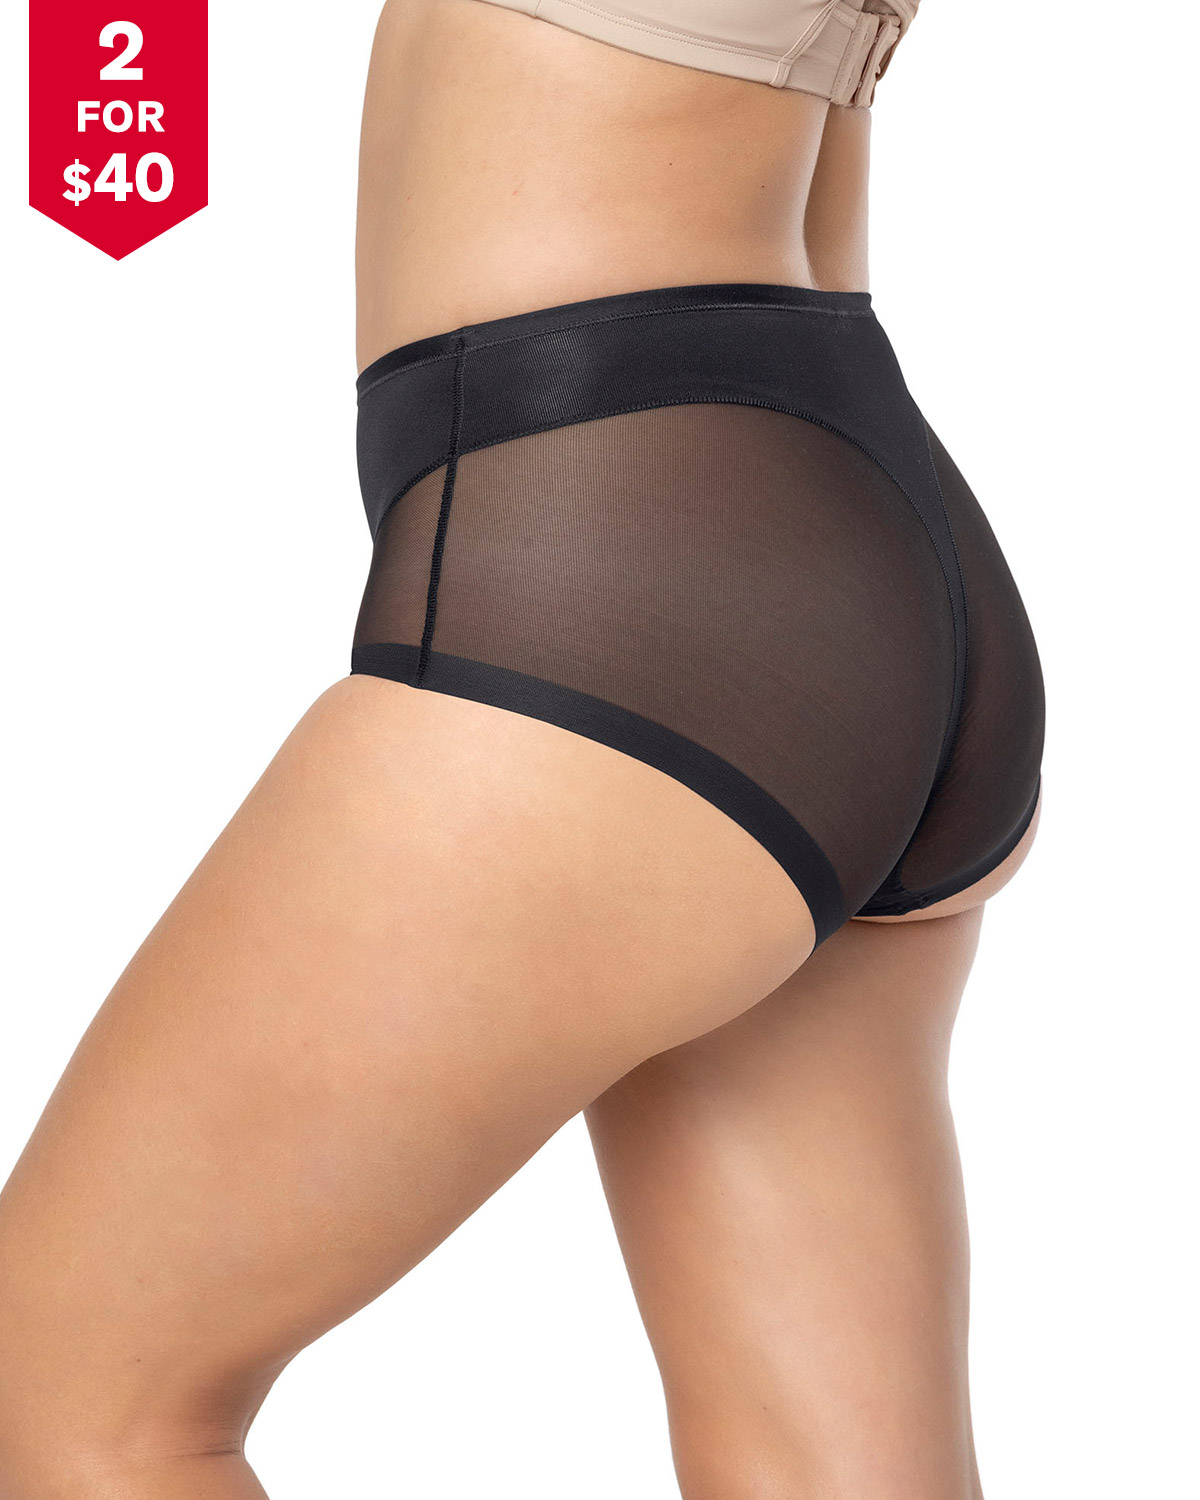 truly invisible super comfy compression panty shaper--MainImage